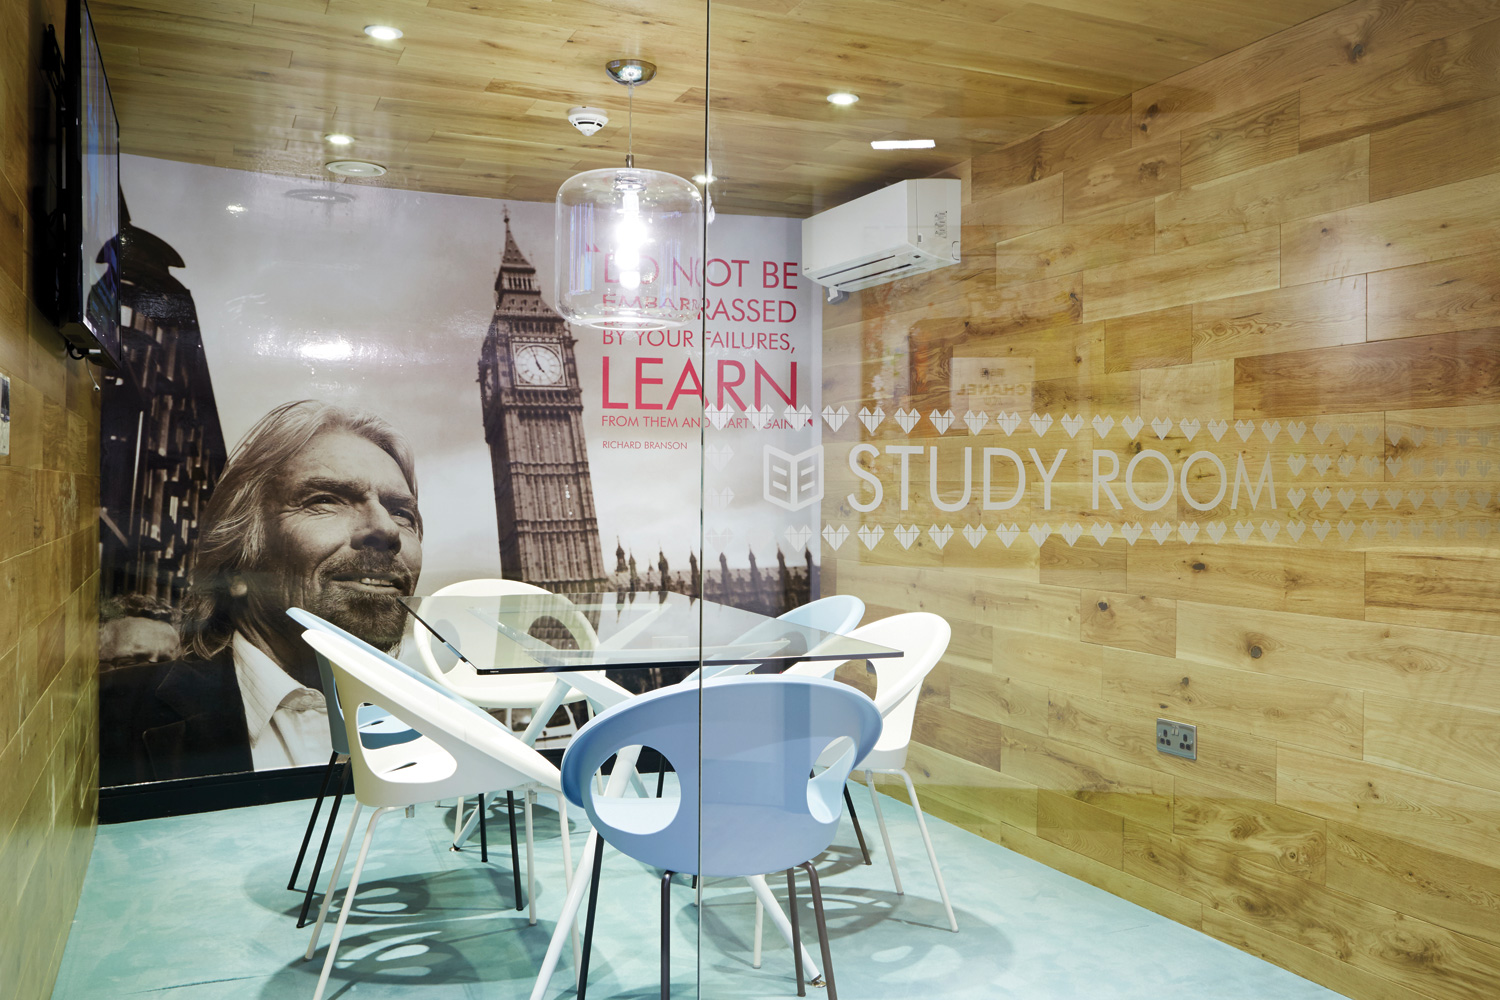 Study room manifestation and large graphic